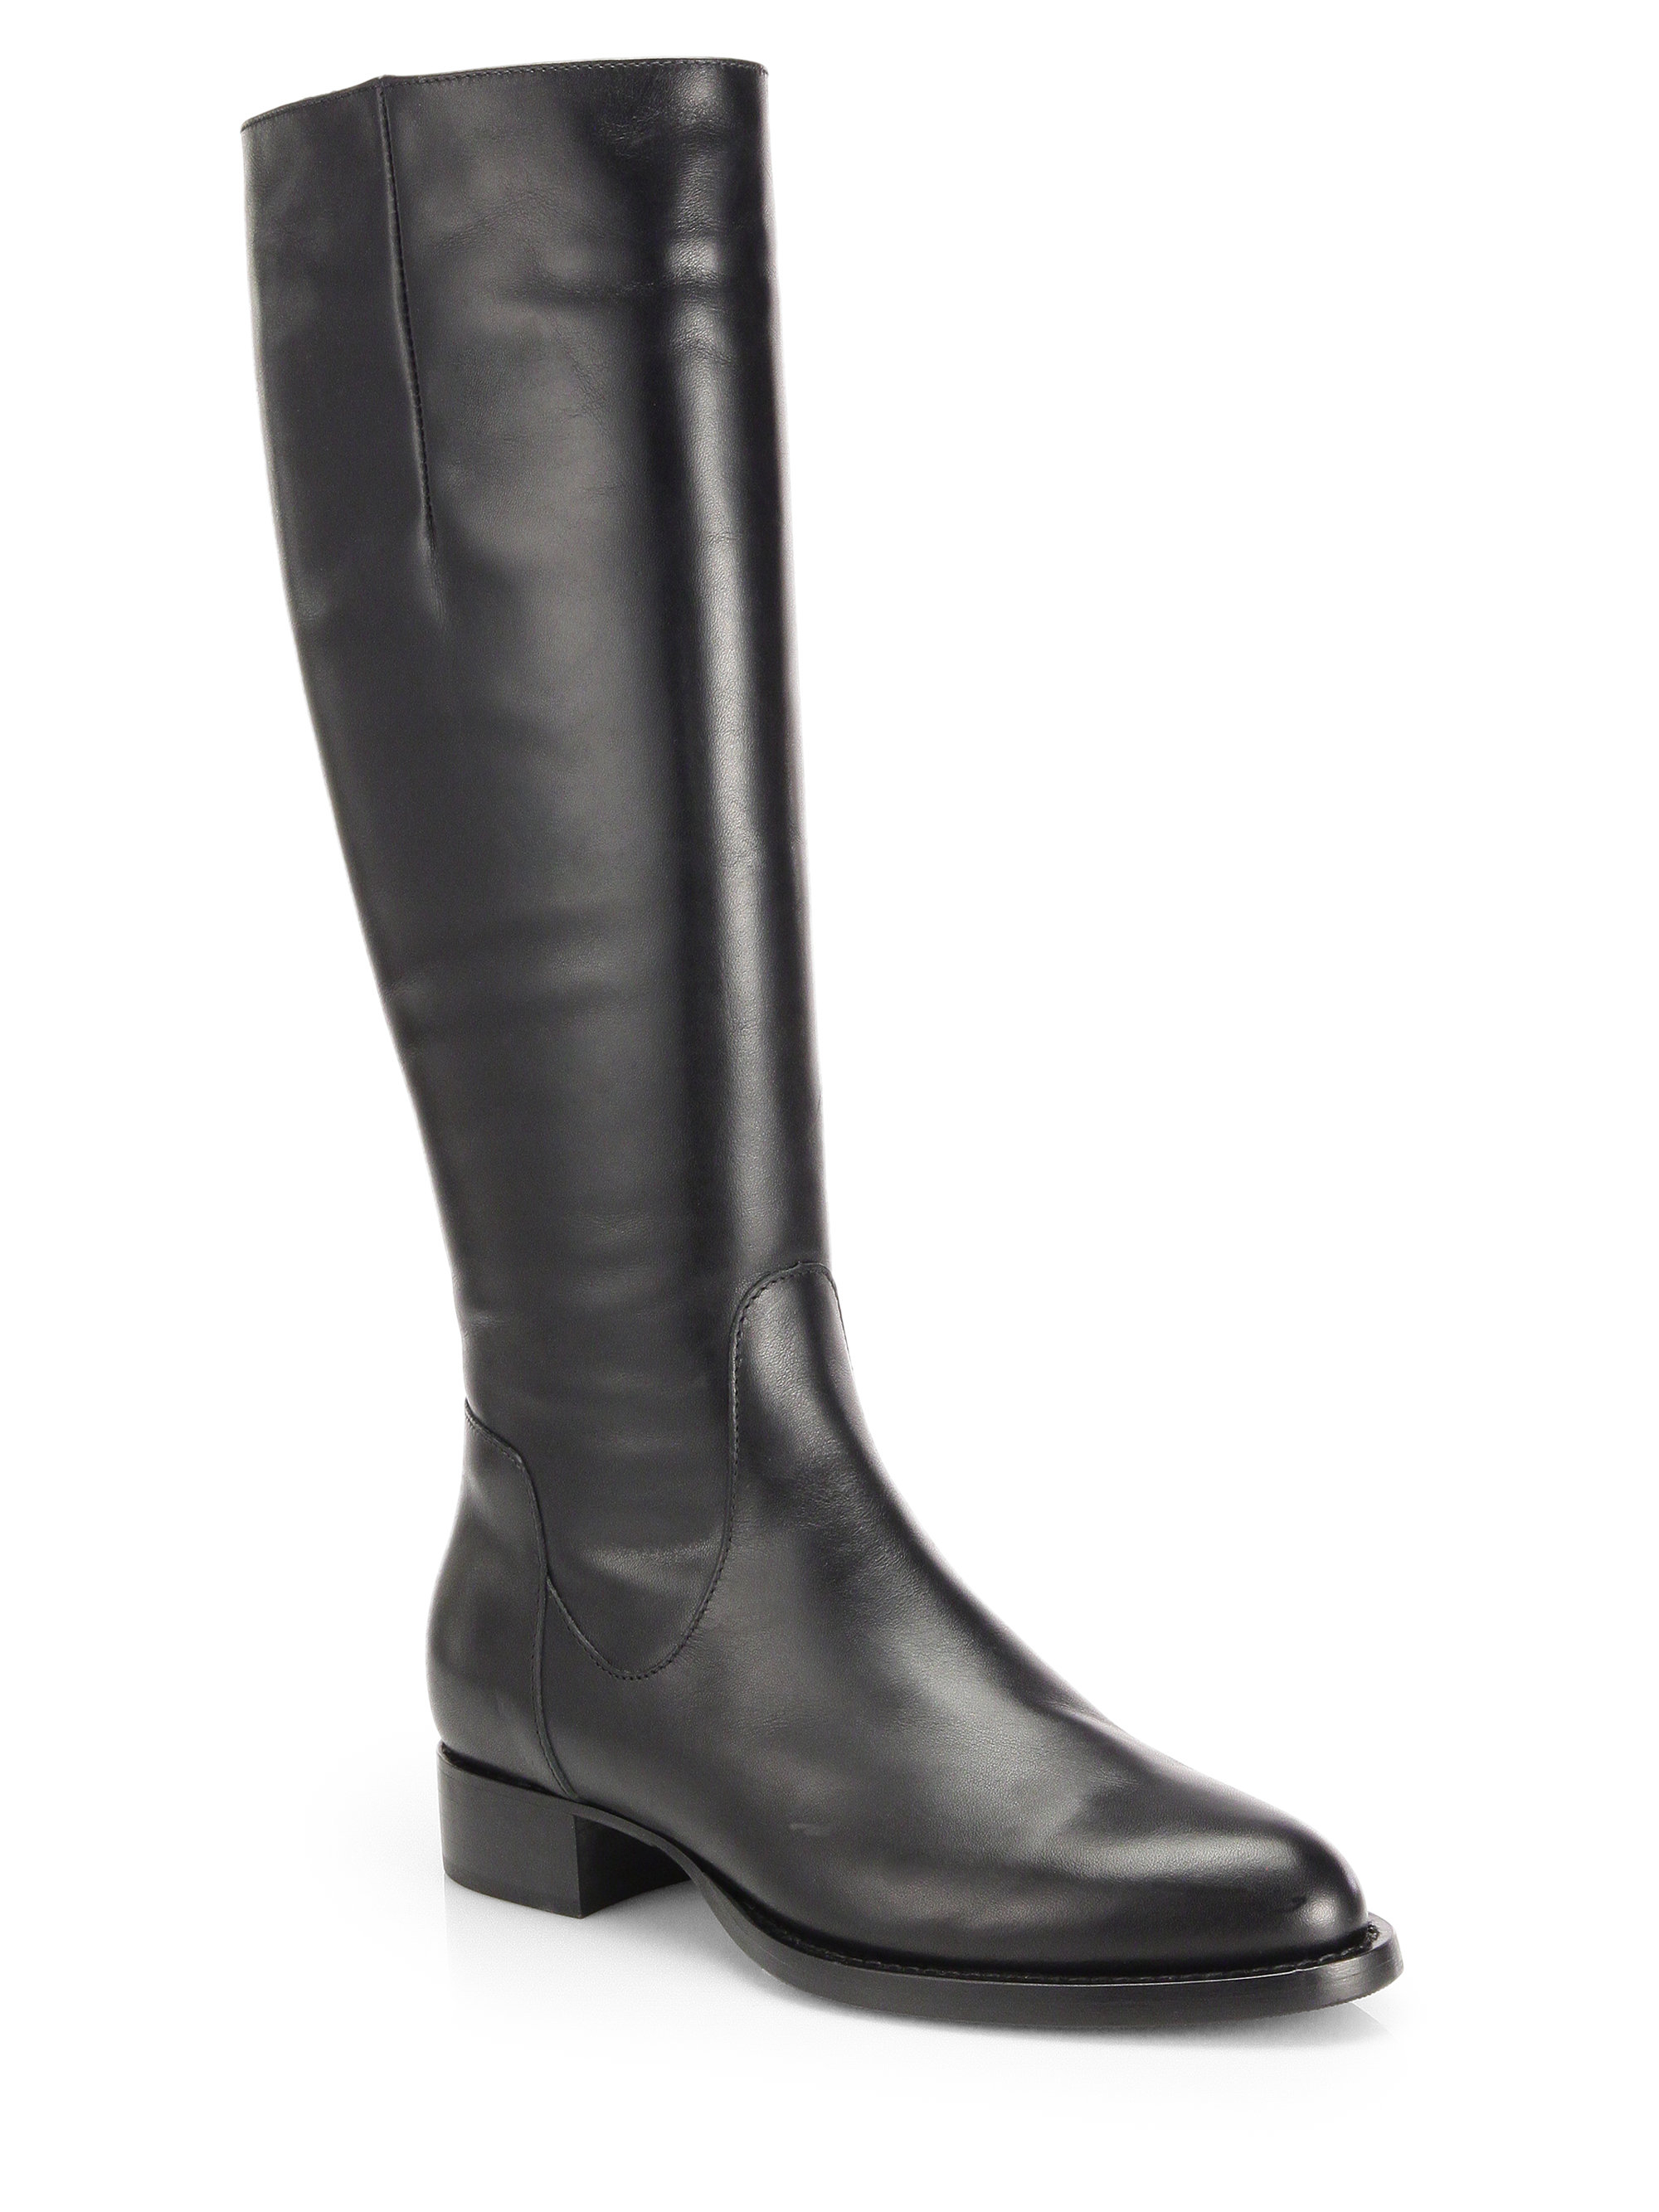 Aquatalia Leather Knee-High Boots discount fast delivery with paypal free shipping 3OawCrh9G